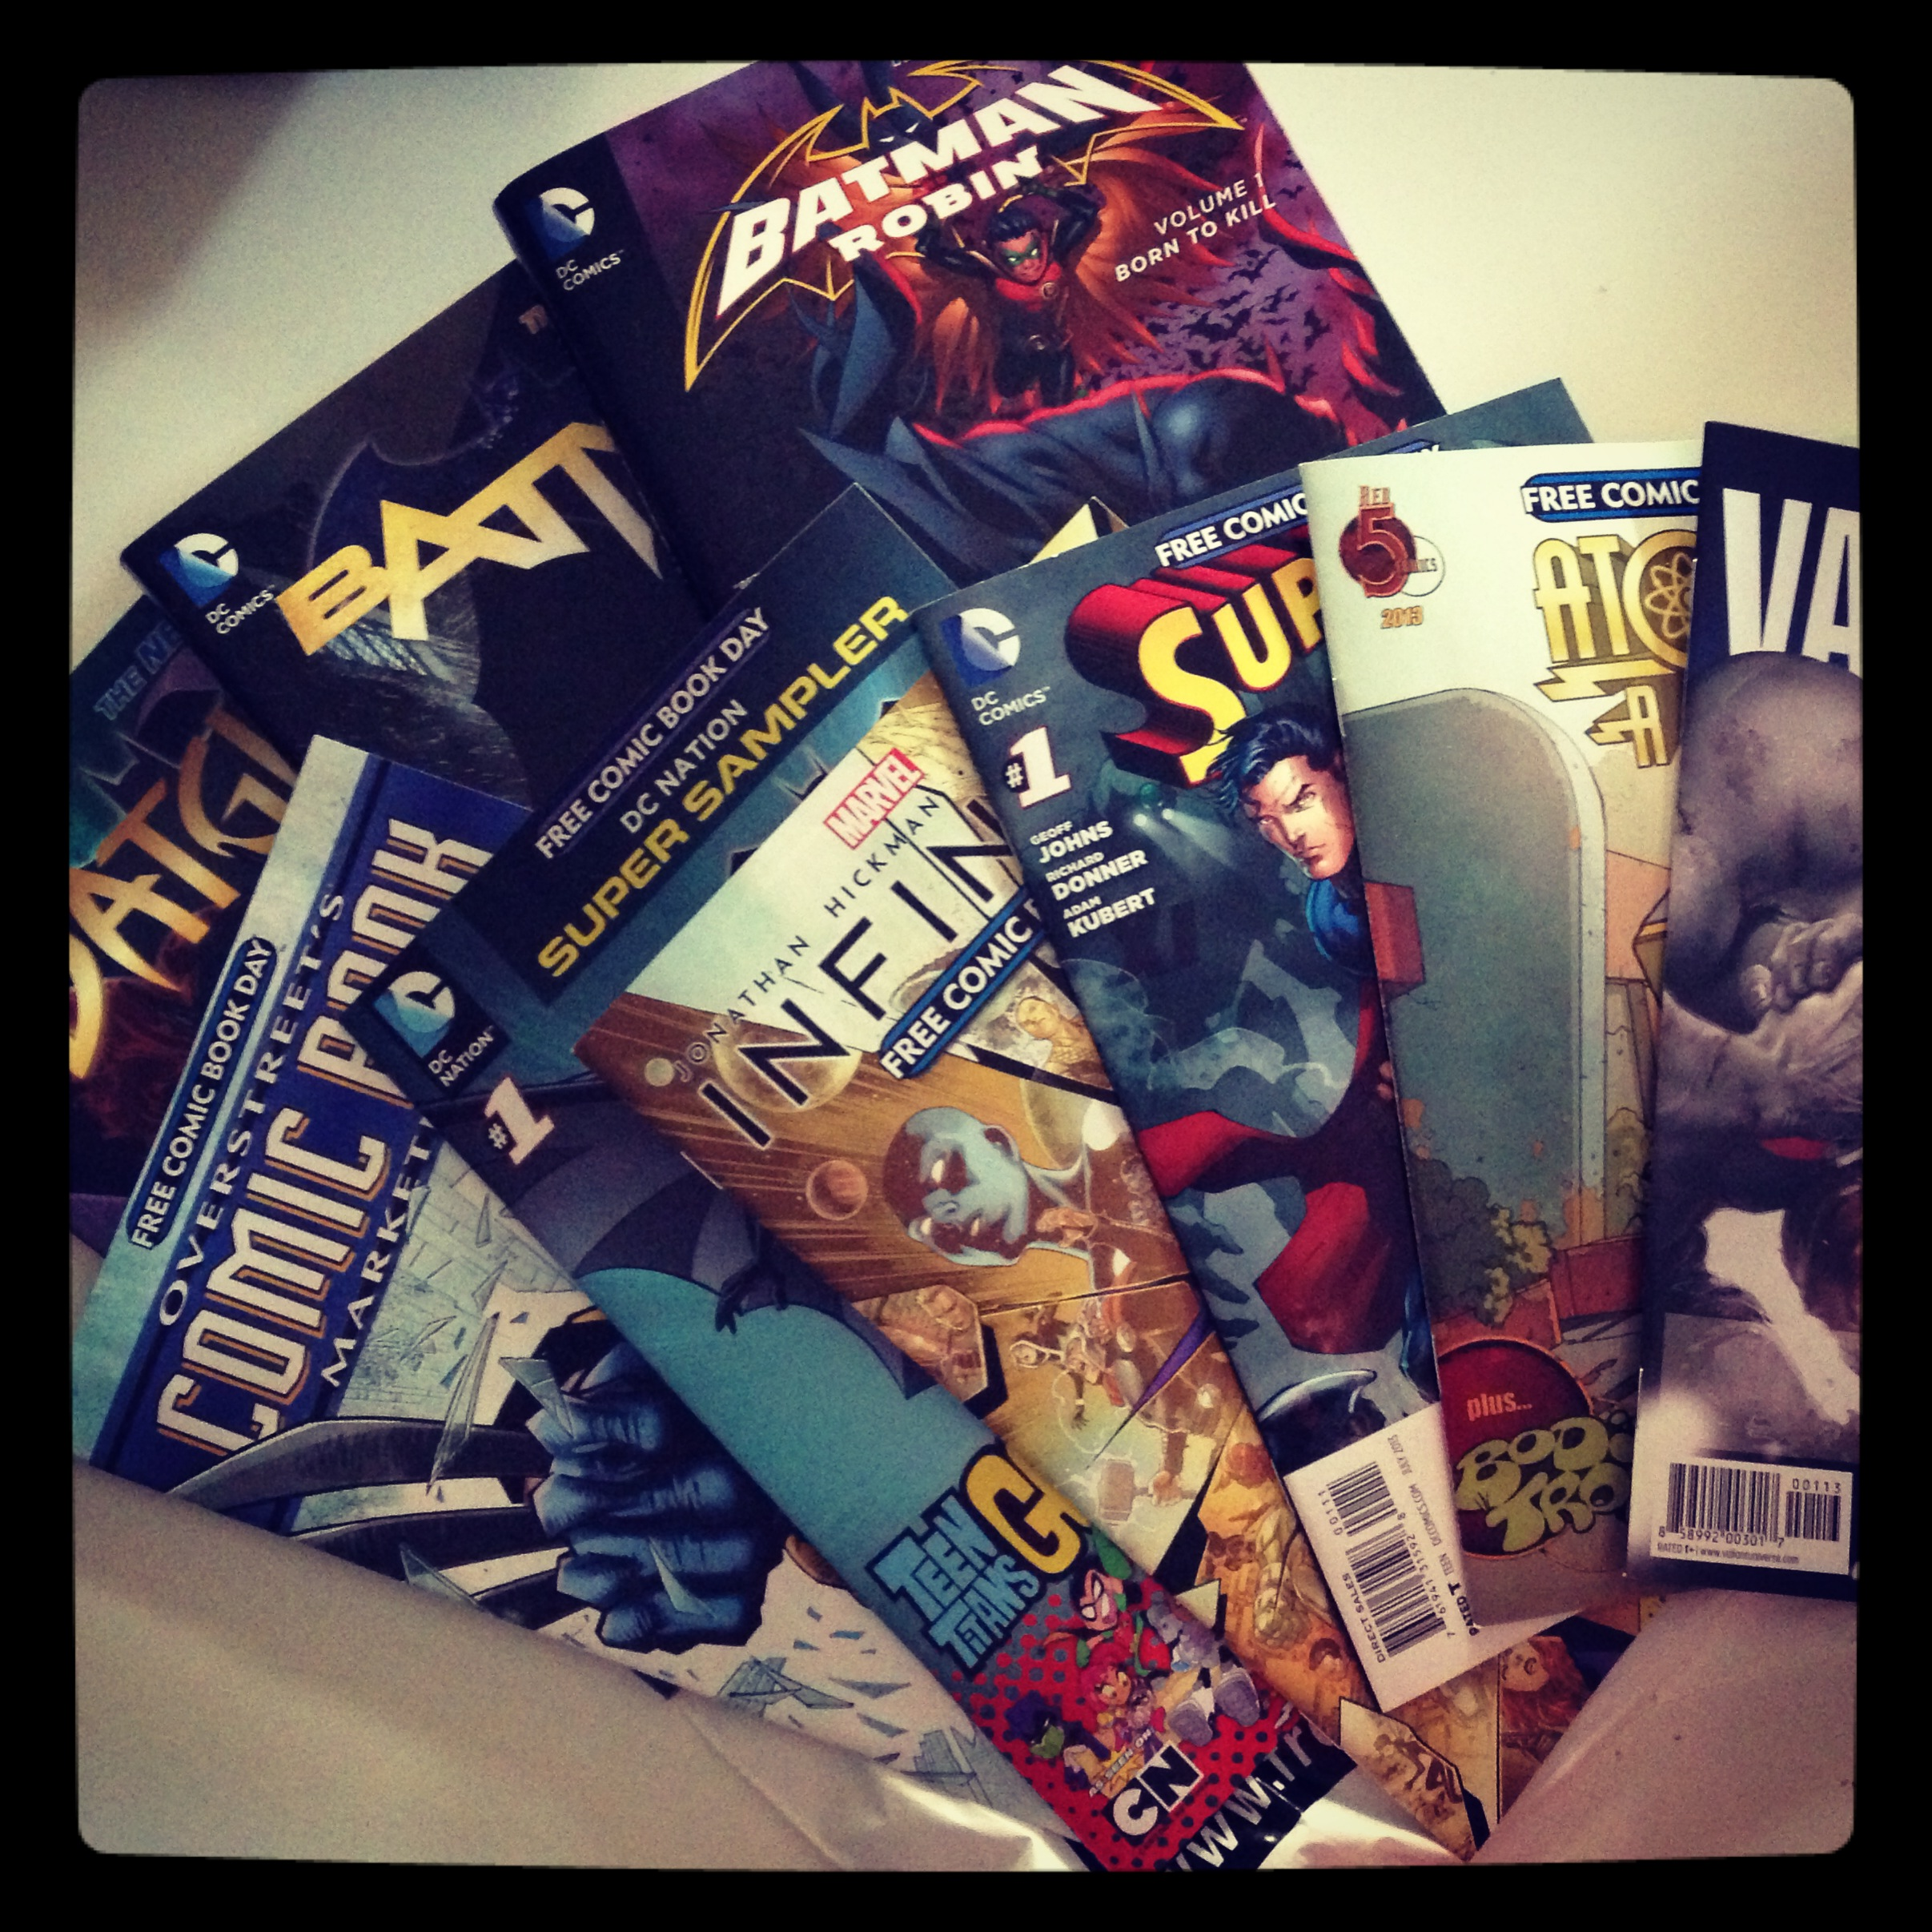 Free Comic Book Day España: Happy Star Wars Day! (And Free Comic Book Day Too!)